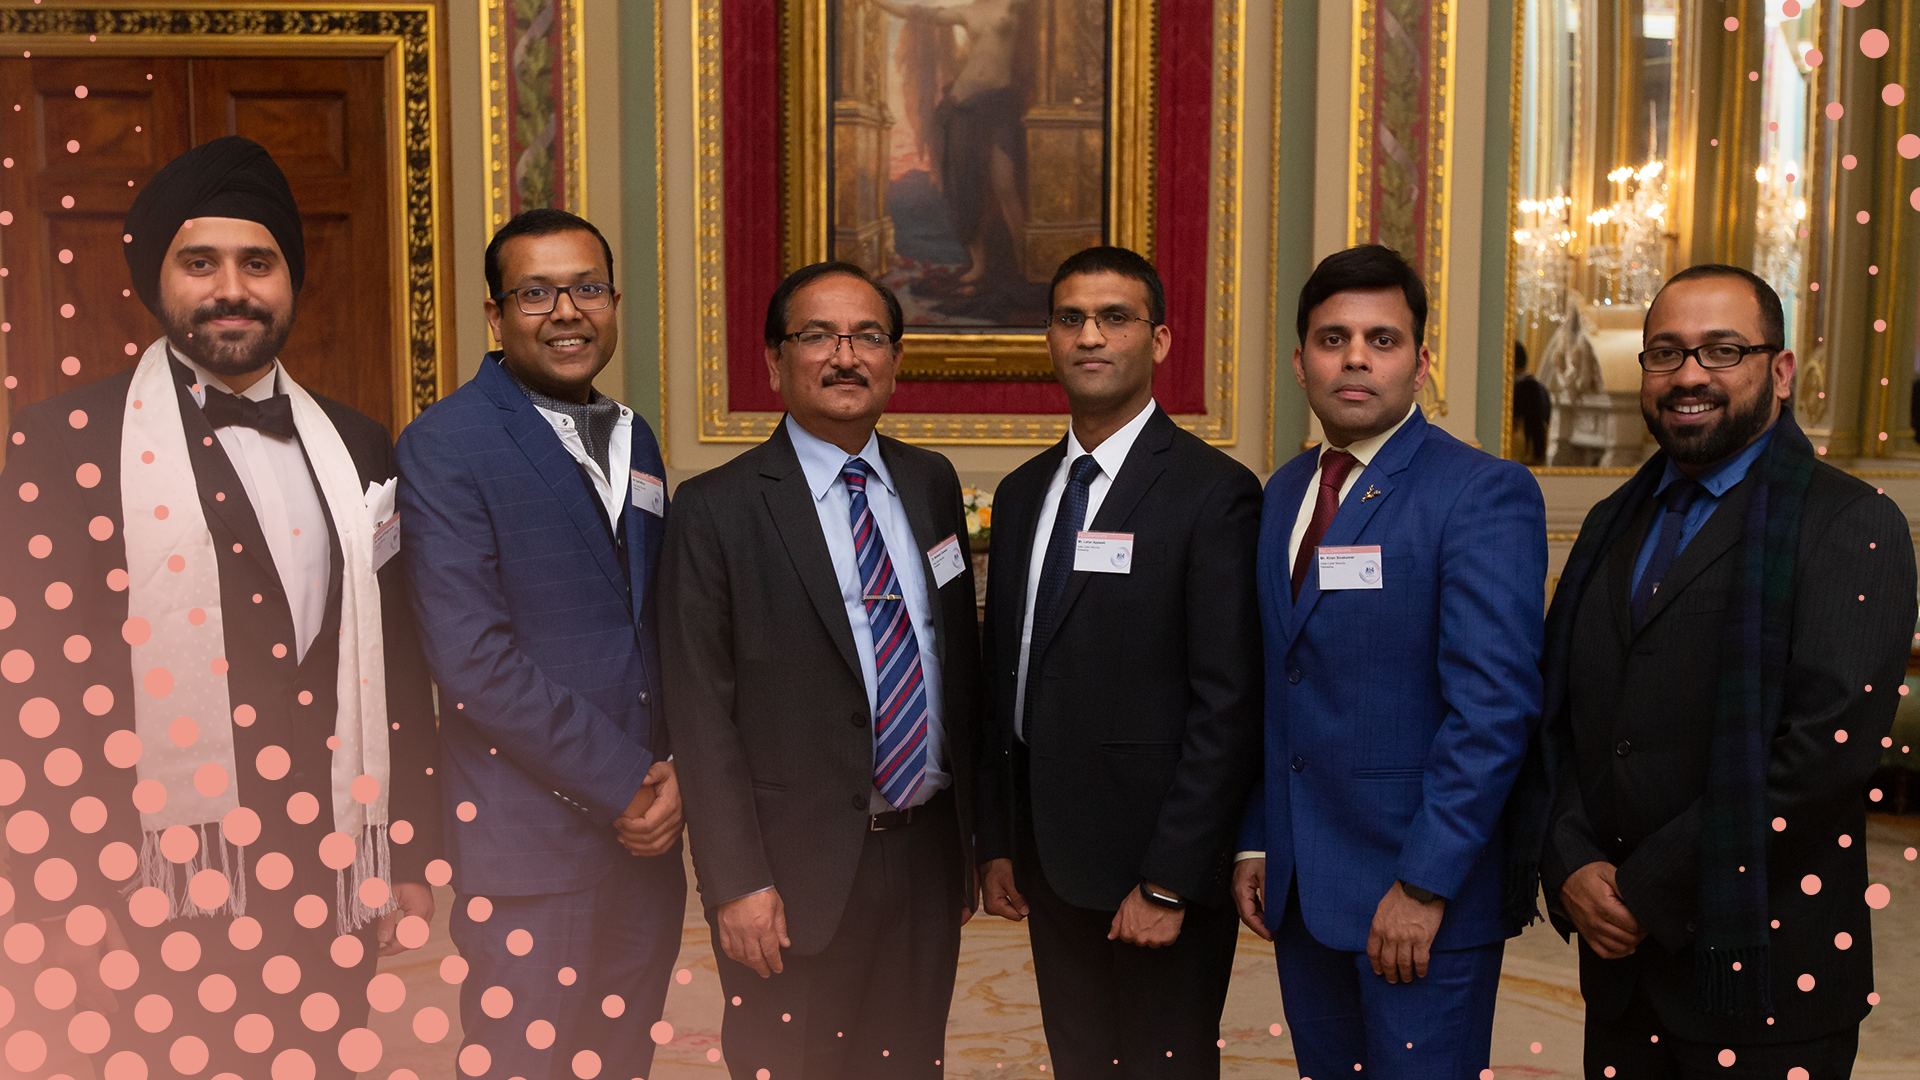 Meet our Chevening India Cyber Security Fellows